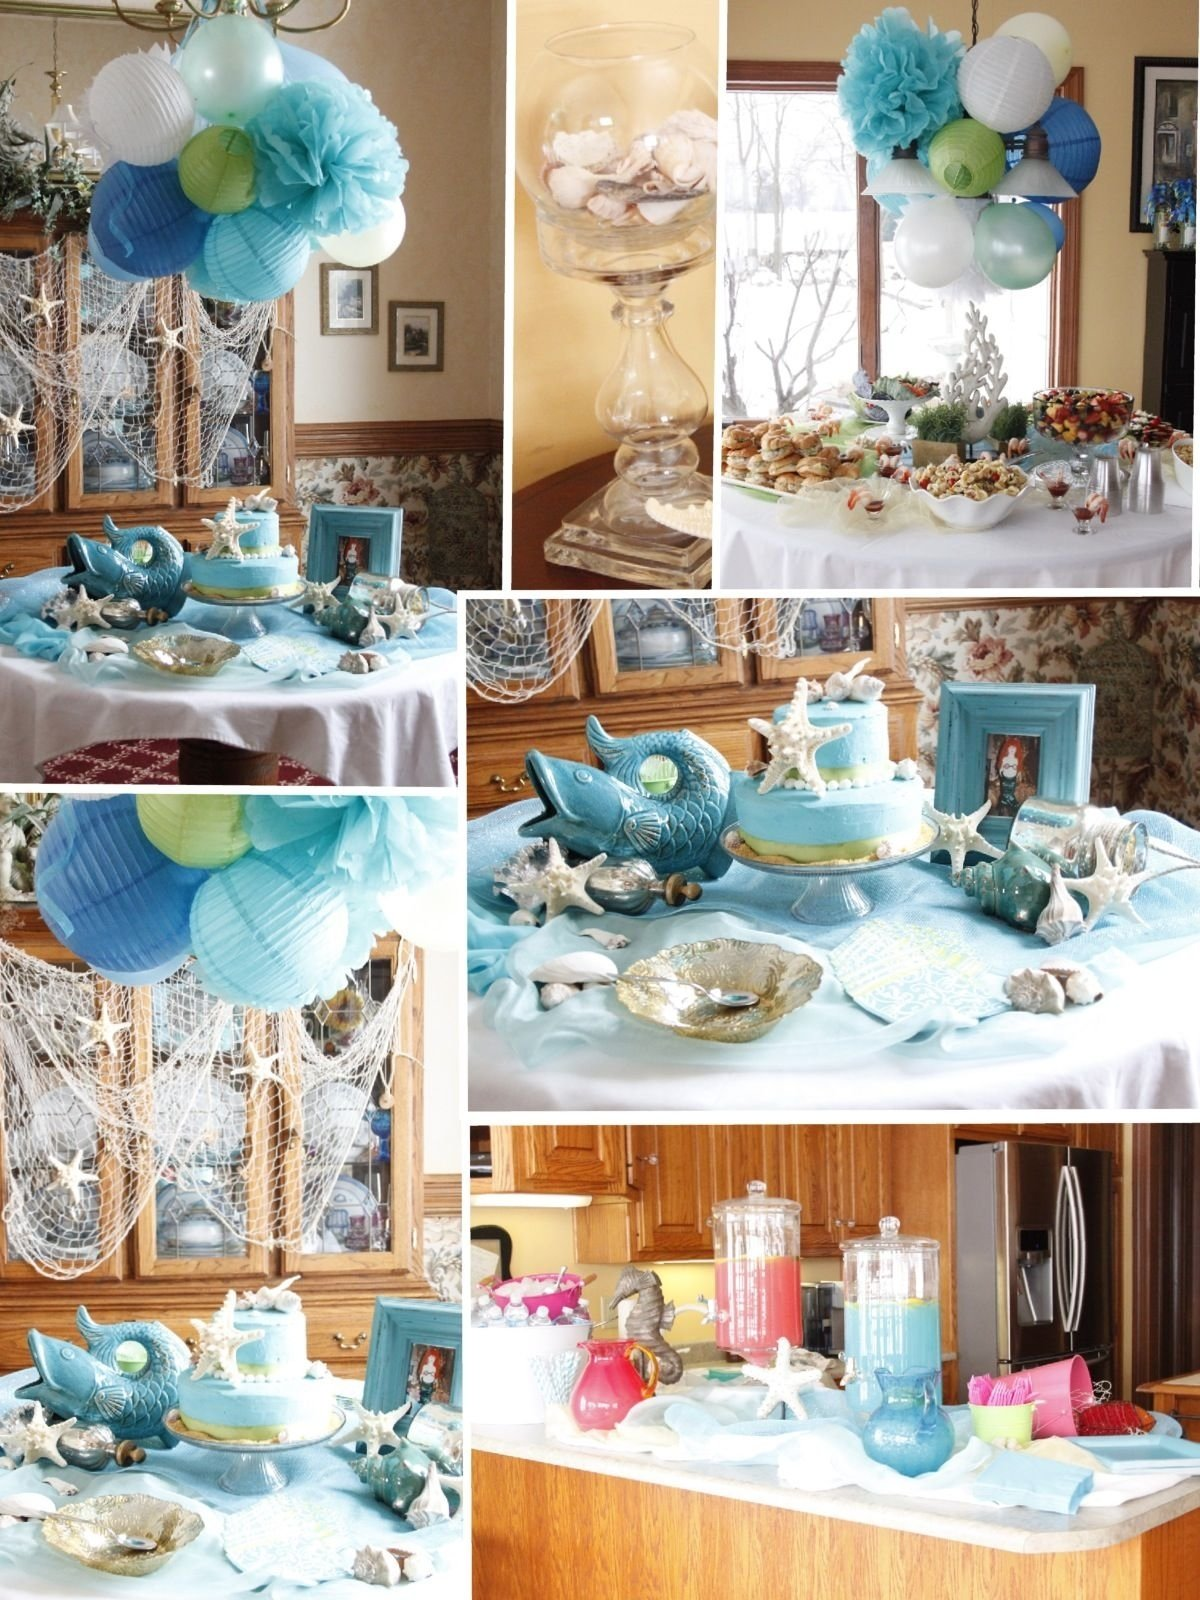 10 Great Beach Theme Bridal Shower Ideas under the sea bridal shower showers pinterest bridal showers 2020